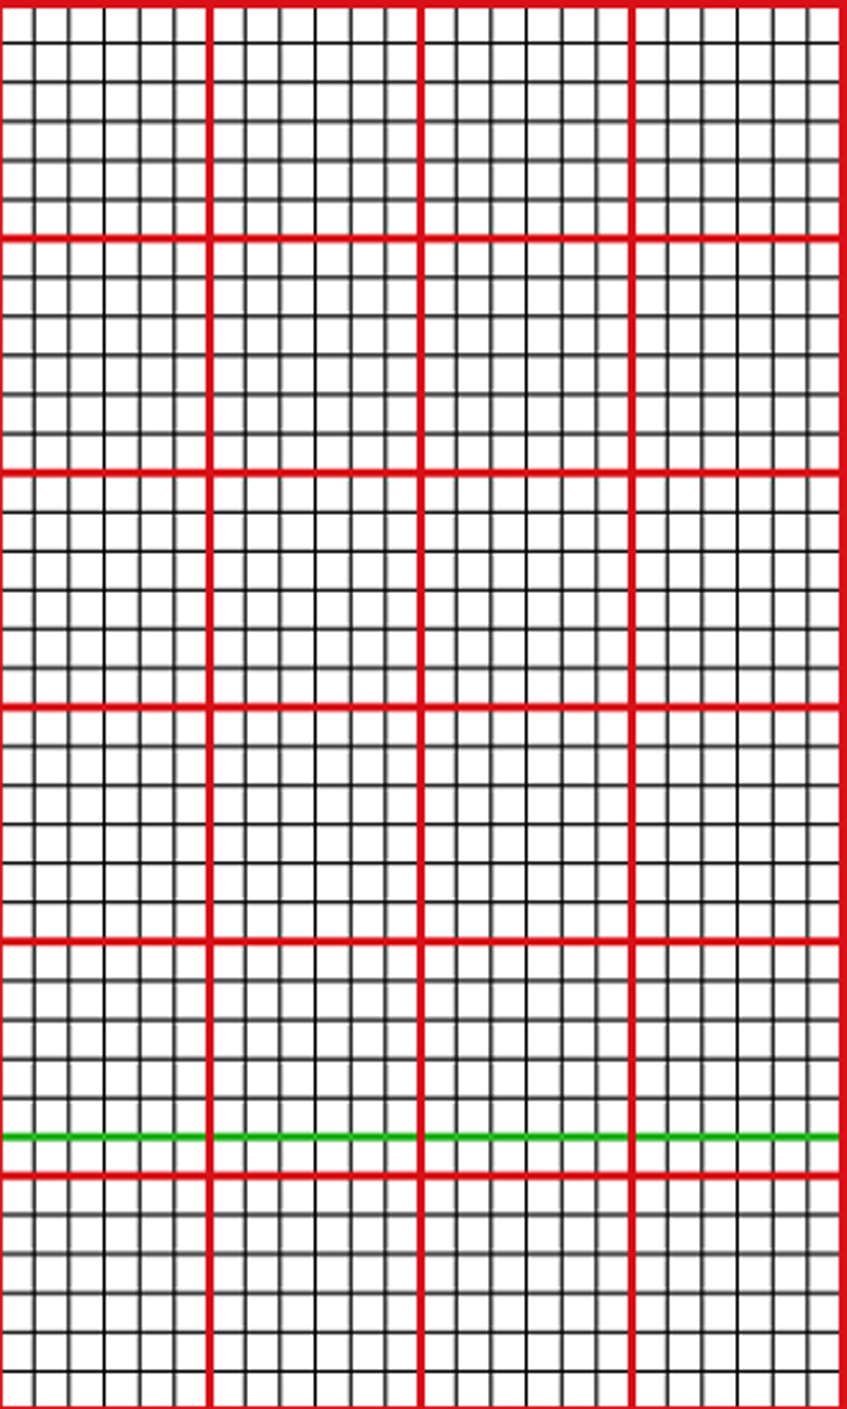 how to make graph paper in excel 2010 - Tire.driveeasy.co